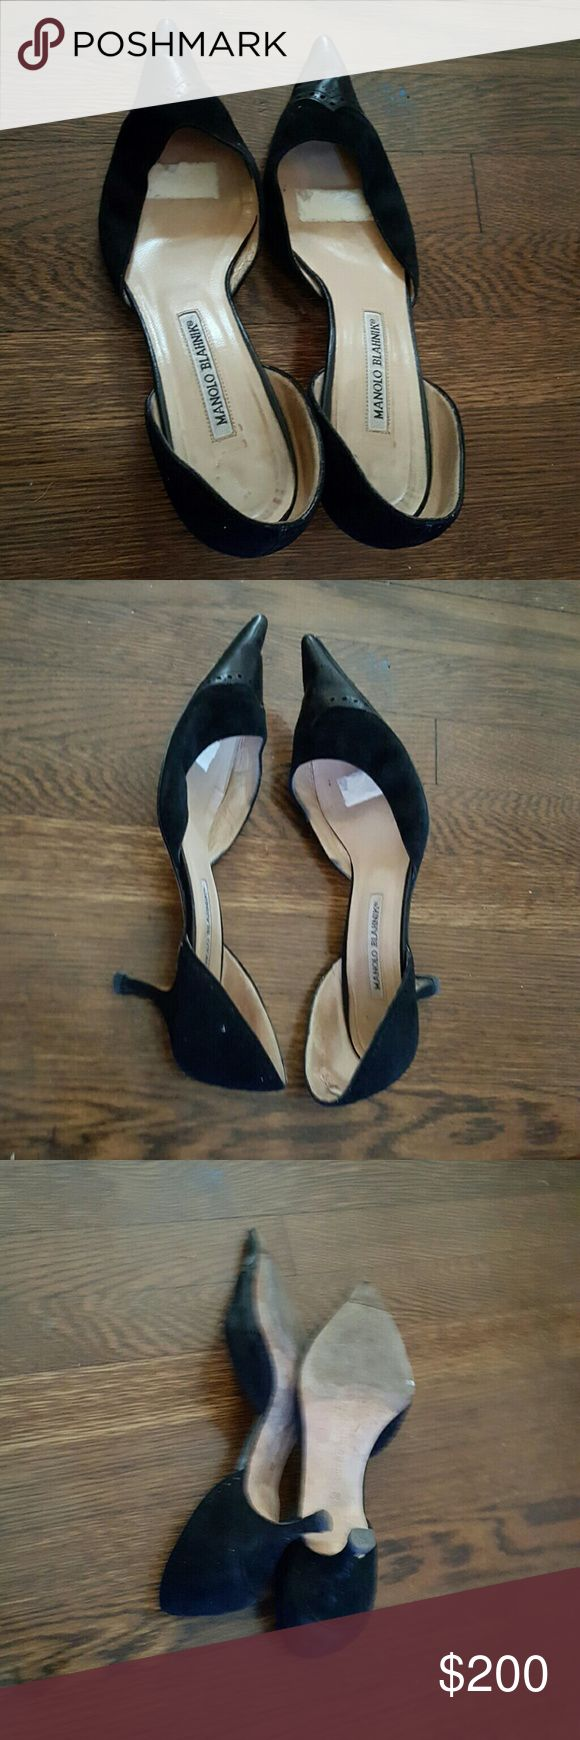 Selling this Manolo Blahnik low heel in my Poshmark closet! My username is: fludrey. #shopmycloset #poshmark #fashion #shopping #style #forsale #Manolo Blahnik #Shoes